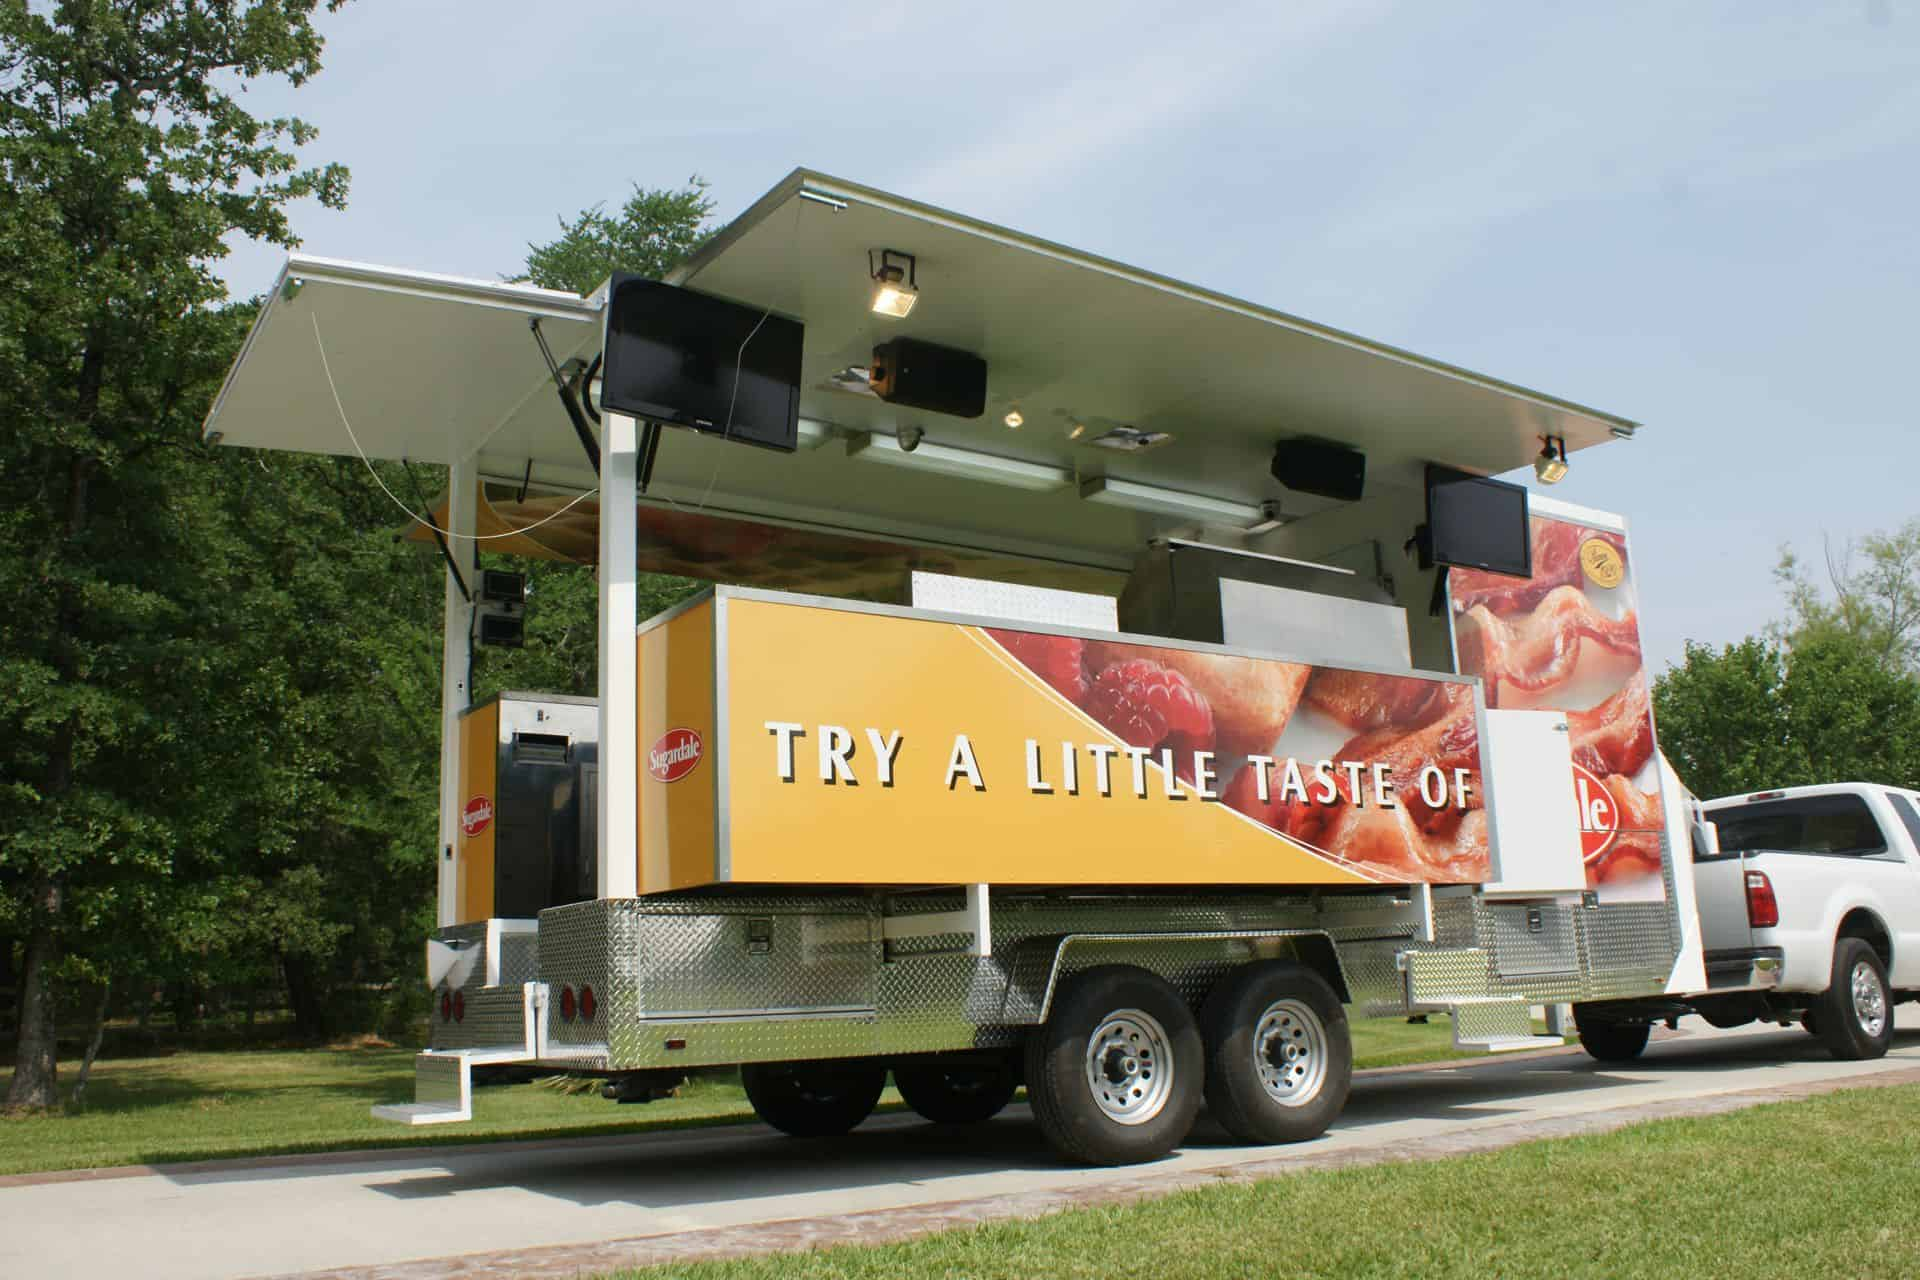 mobile kitchen trailer mini pendant lights for island experiential cooking - imagi-motive